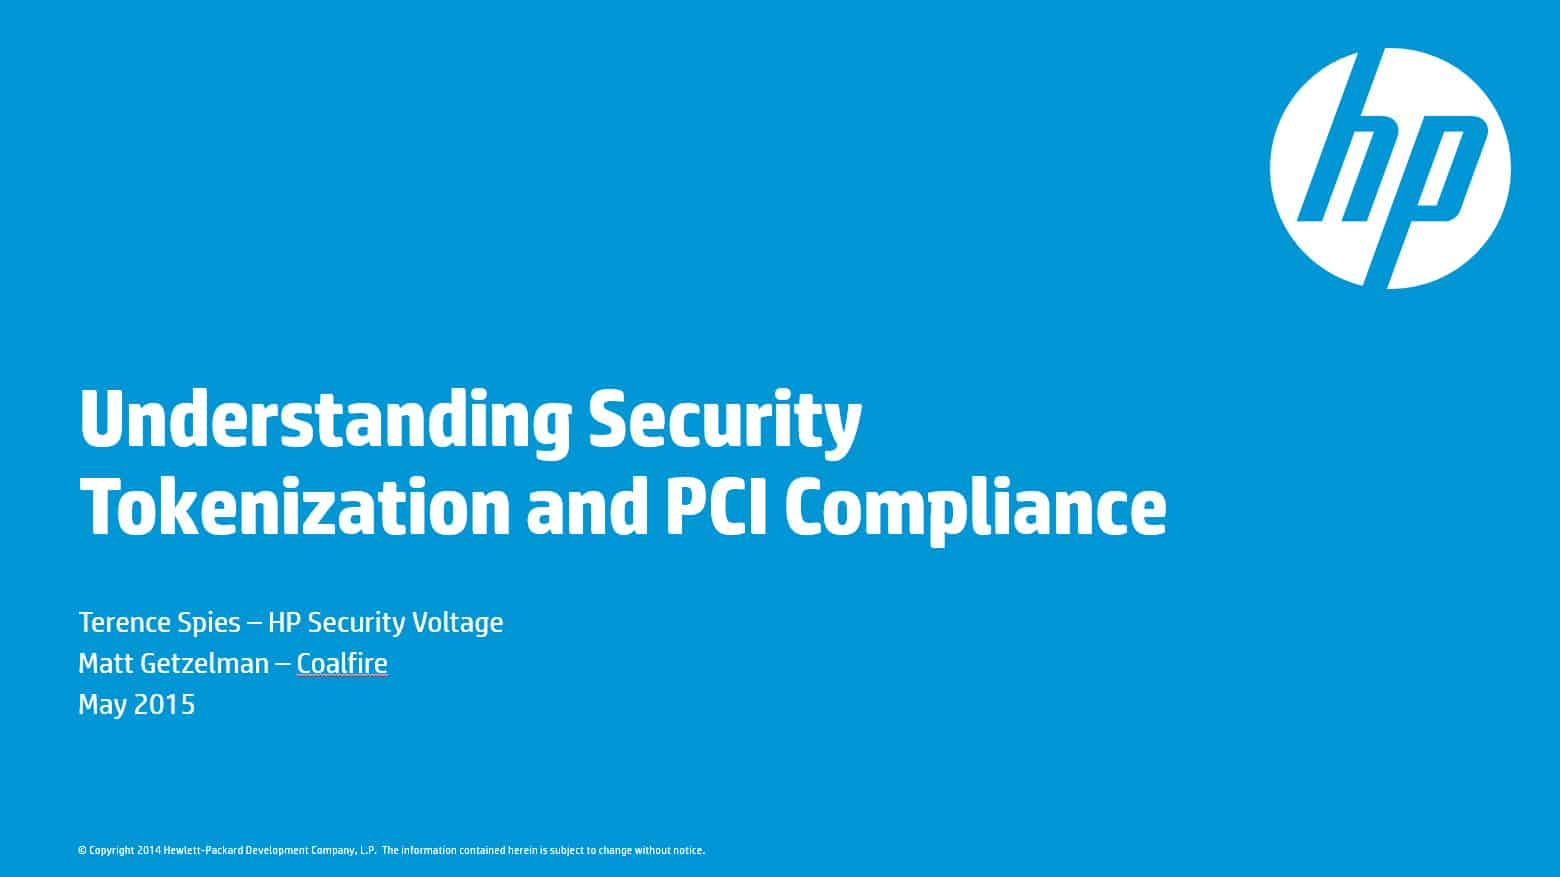 2015-05-20 TMCnet Webcast 3 PCI Tokenization